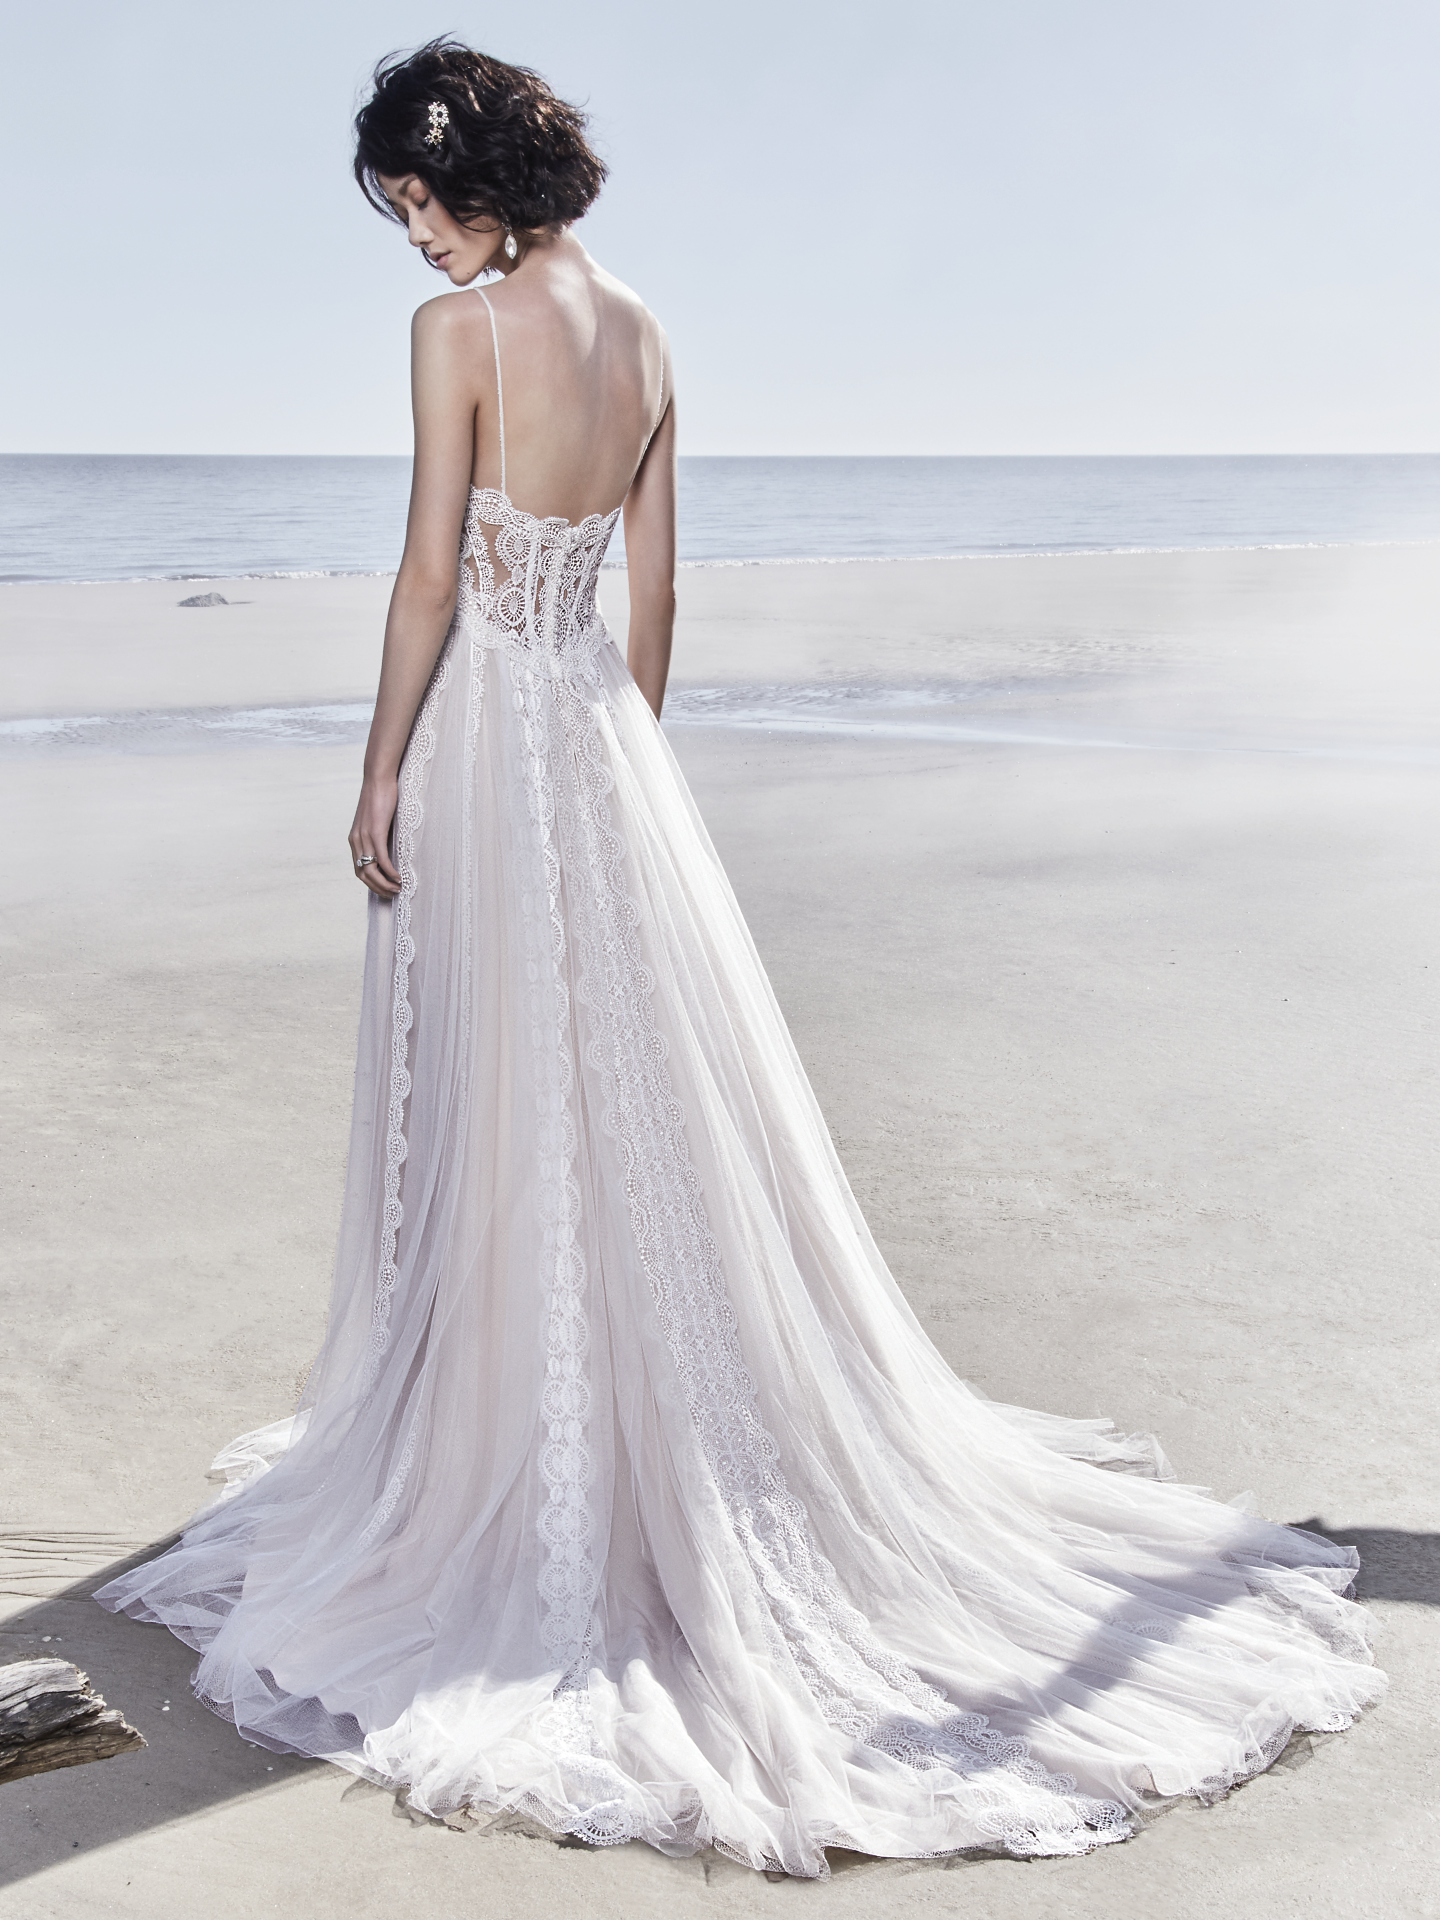 Best Accessories for Your Boho Wedding Dress - Olson boho wedding dress by Sottero & Mdigley paired with edgy heels